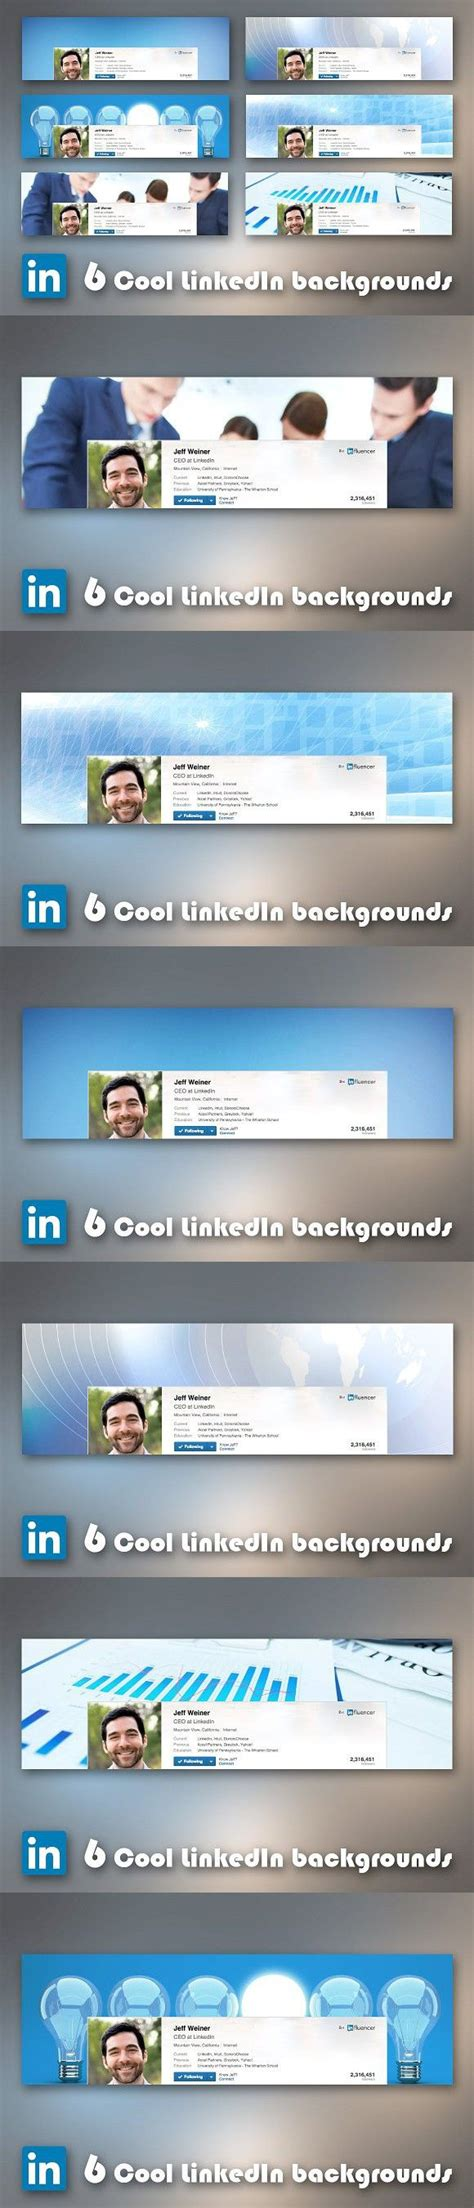 linkedin business card template 6 cool business linkedin backgrounds linkedin background